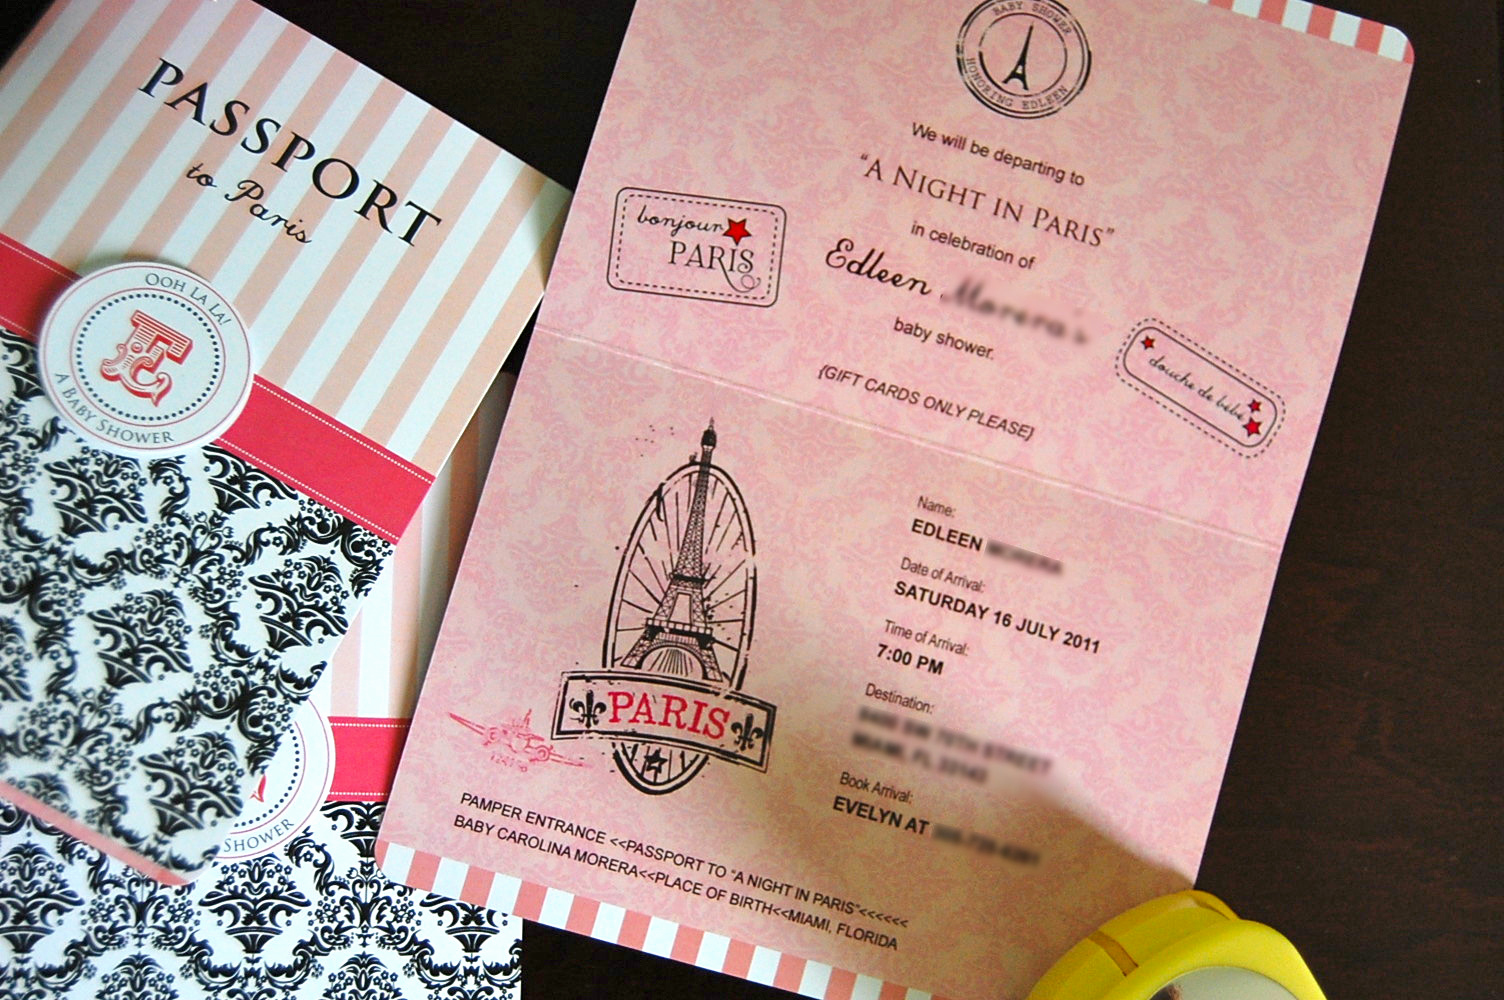 Paris Passport Invitation Template Elegant Flipawoo Invitation and Party Designs Updated Paris